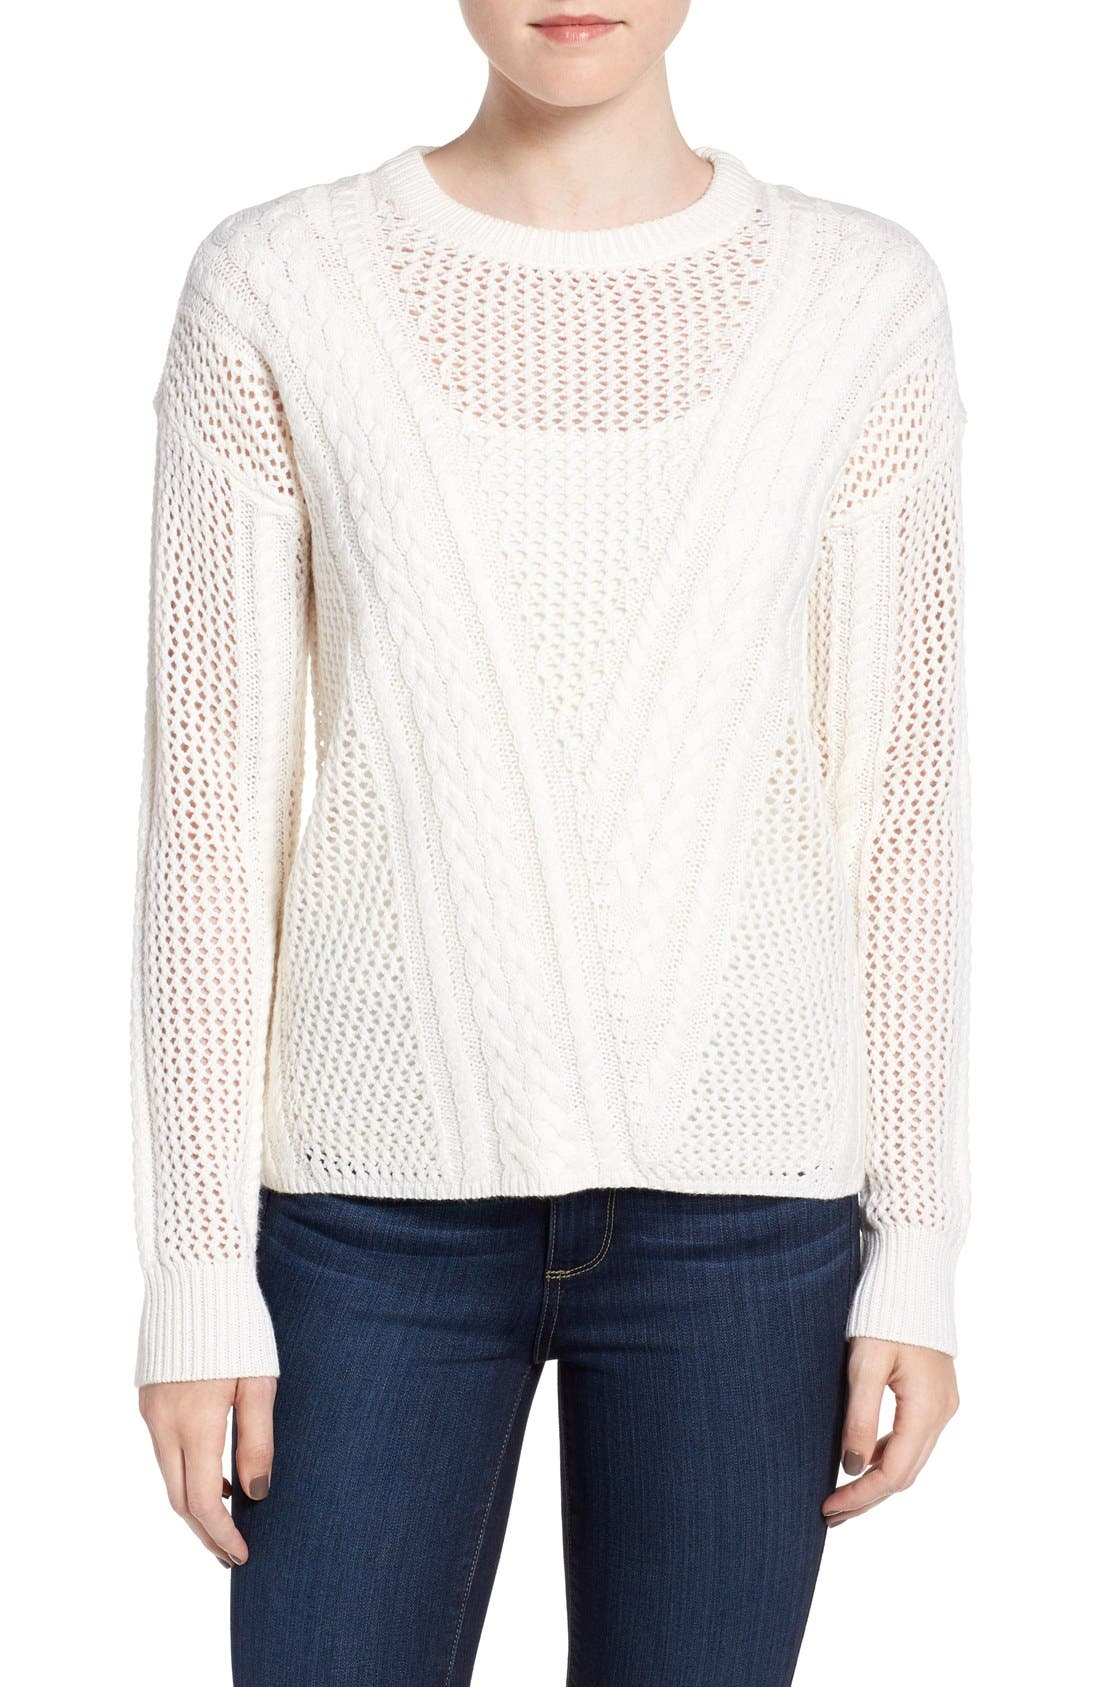 Amory Open Knit Sweater,                             Main thumbnail 1, color,                             901